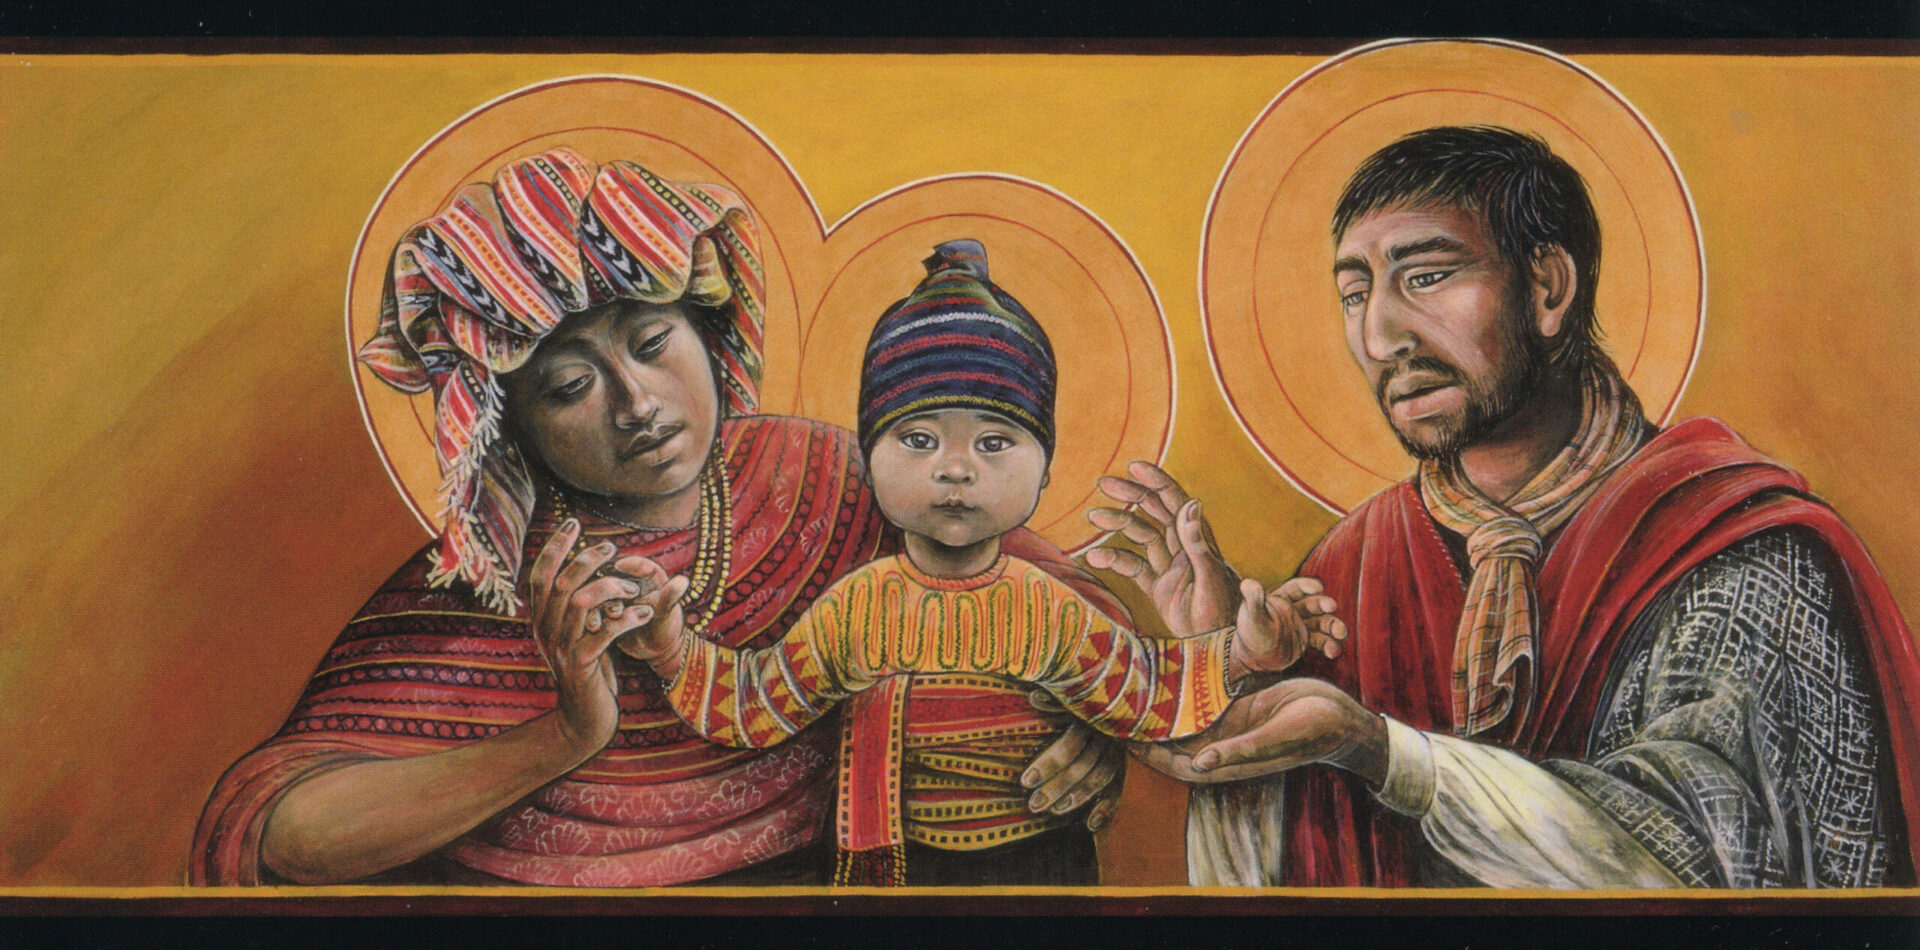 Guatamalan Holy Family Native American Art by Fr. John Giuliani